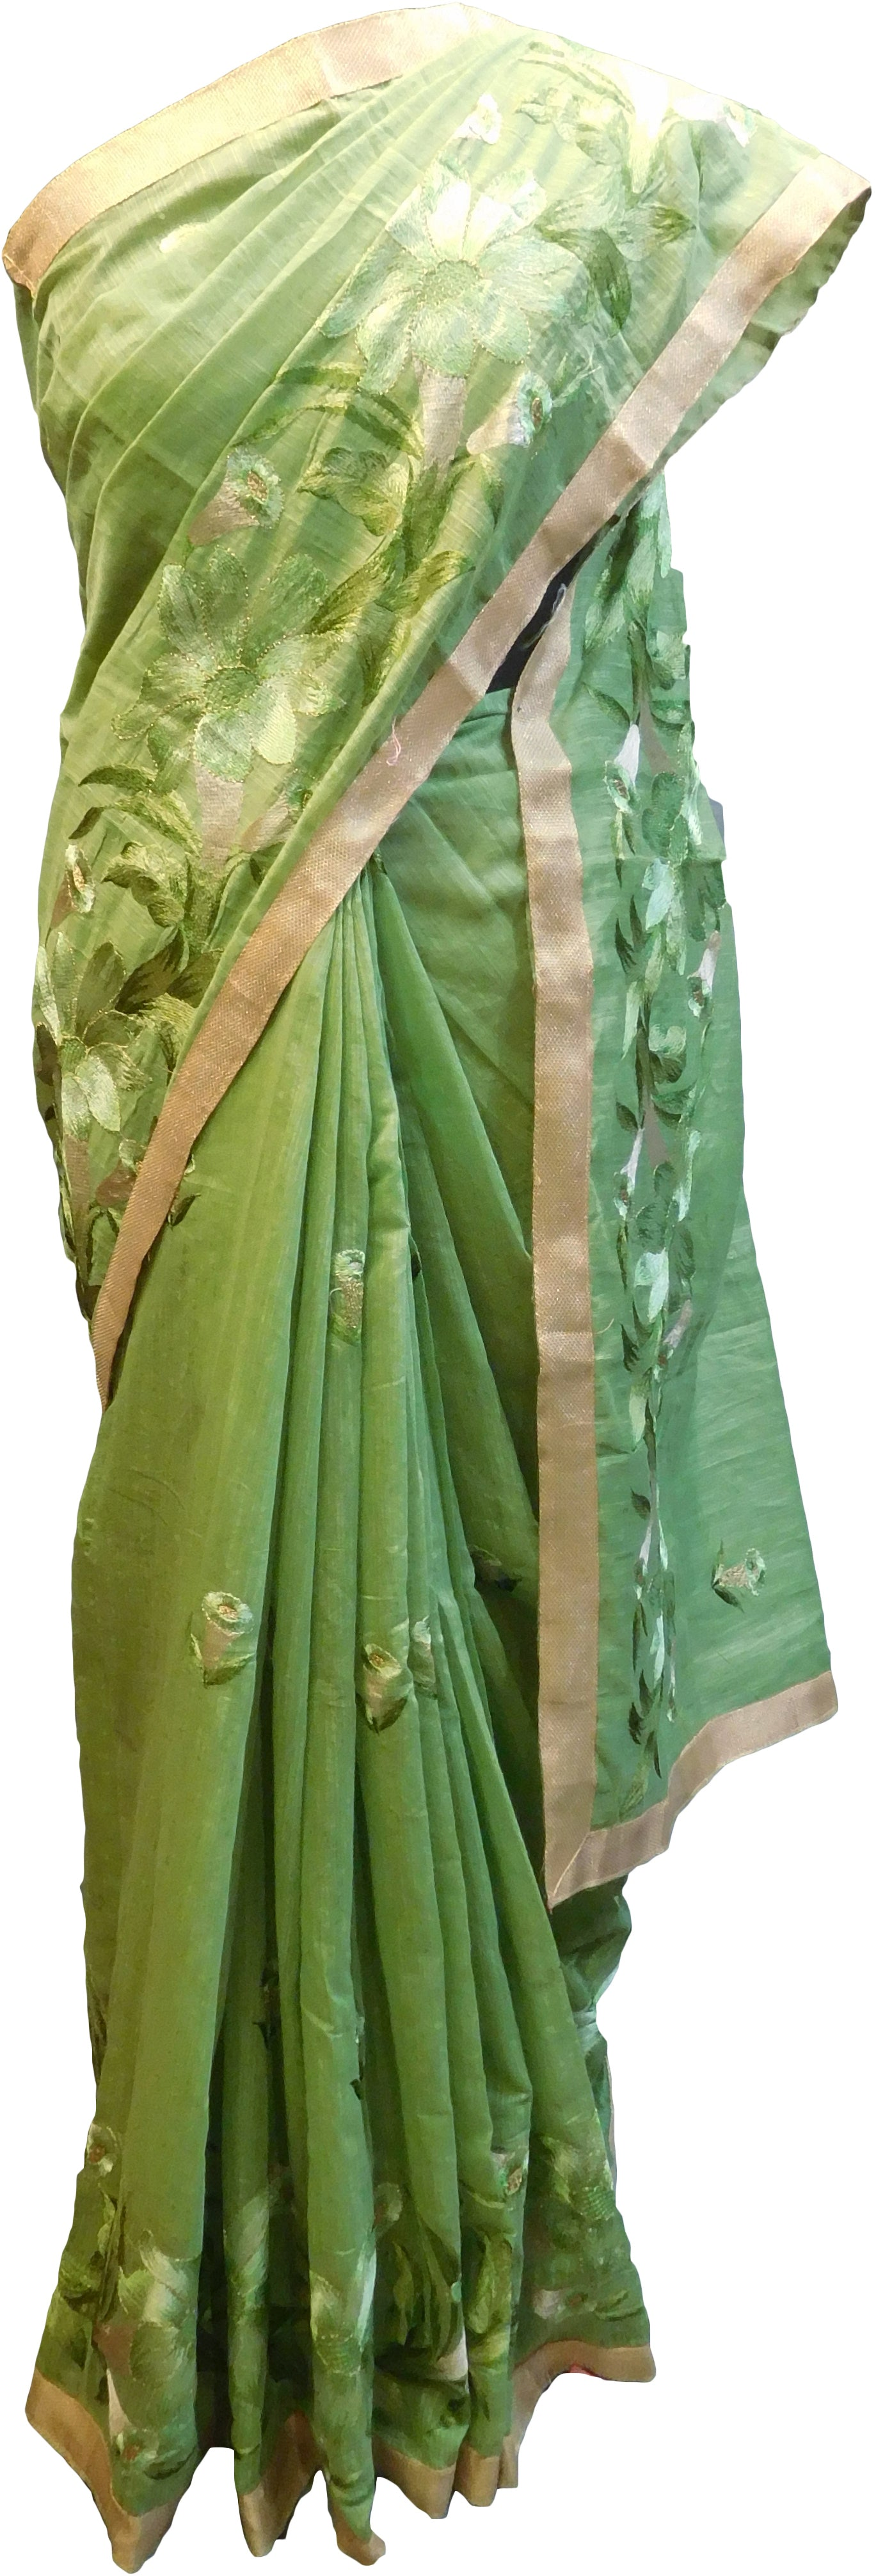 SMSAREE Green Designer Wedding Partywear Cotton (Chanderi) Thread & Zari Hand Embroidery Work Bridal Saree Sari With Blouse Piece E960